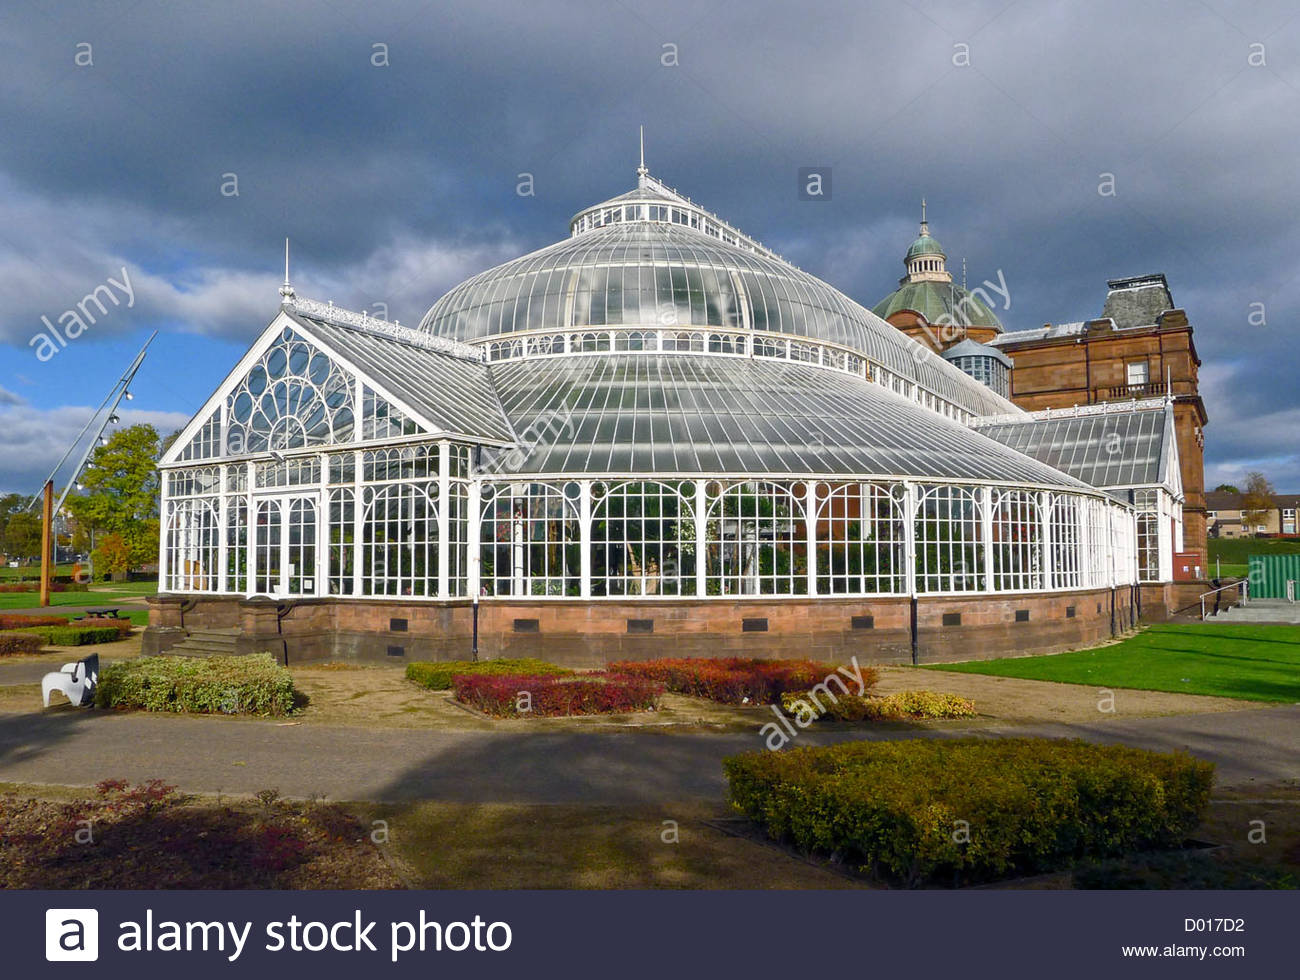 Glasgow Green Glasgow, The People's Palace and Winter Gardens in Glasgow Green park ...